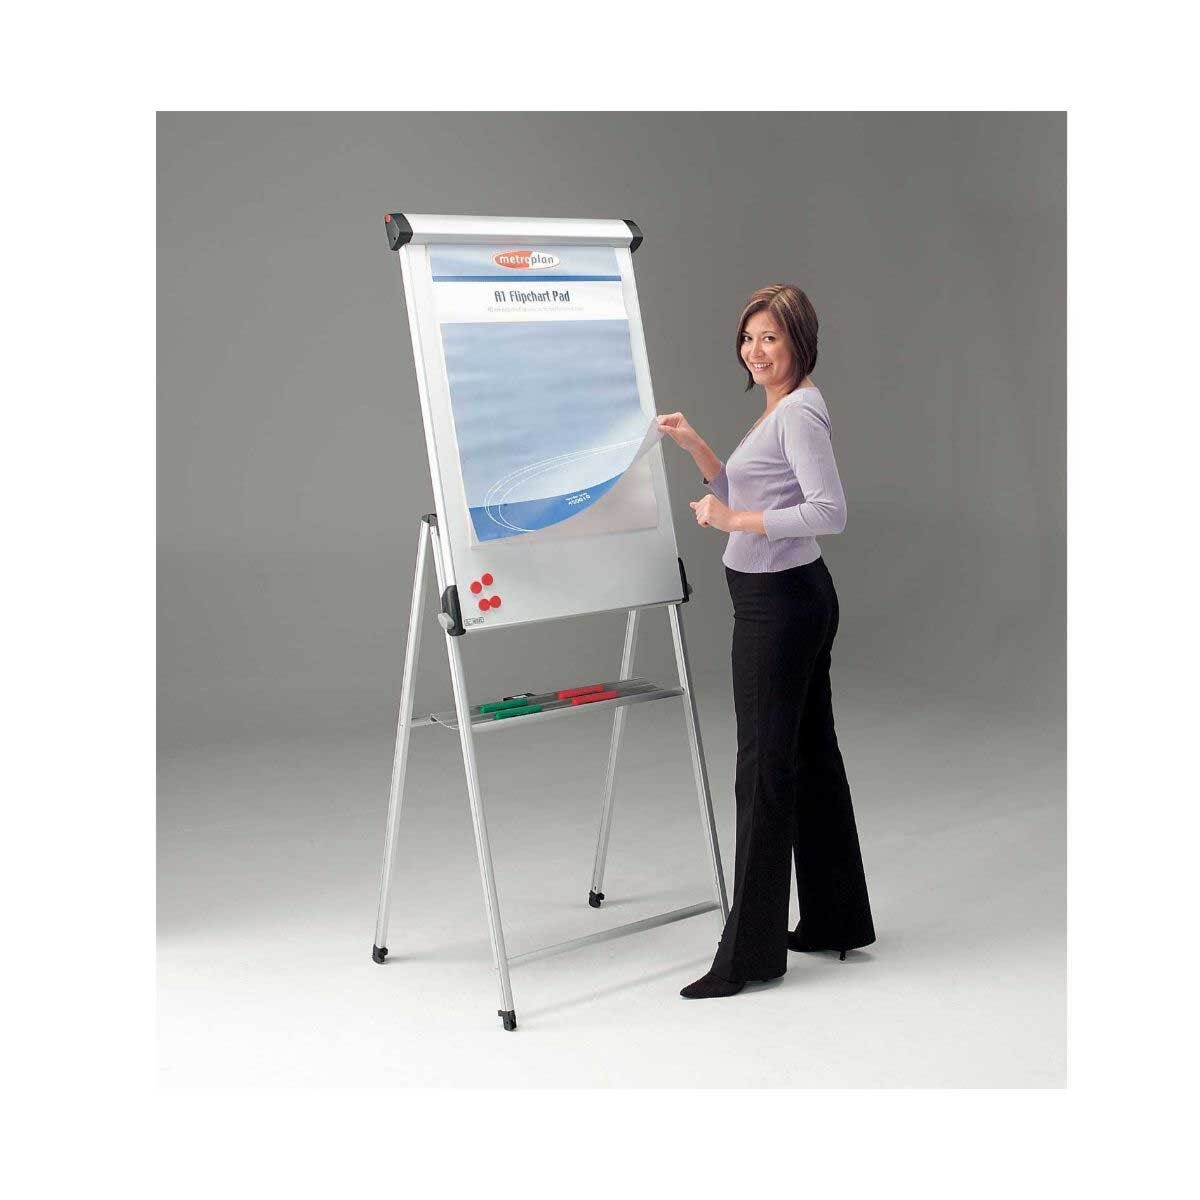 Conference Pro Flipchart Easel 1000x700mm